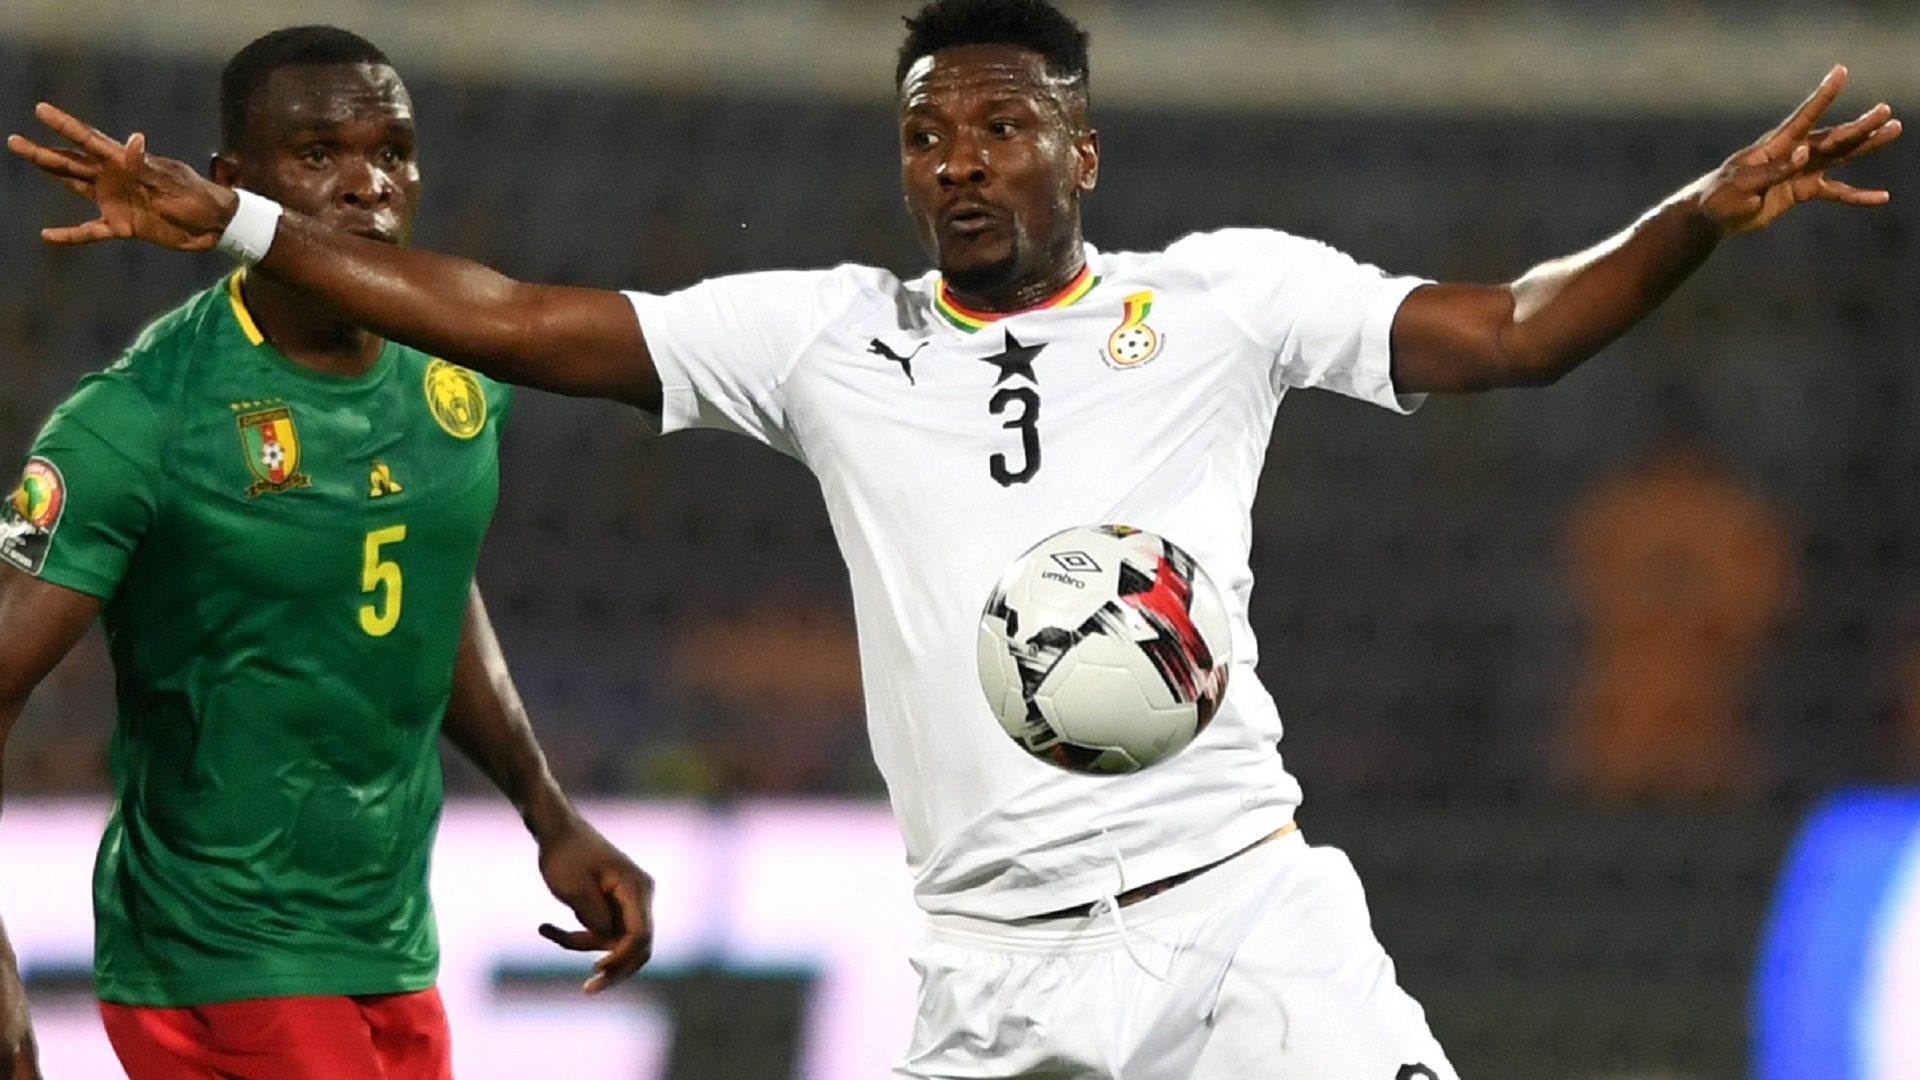 Asamoah Gyan: Ghana superstar joins Indian Super League side NorthEast United